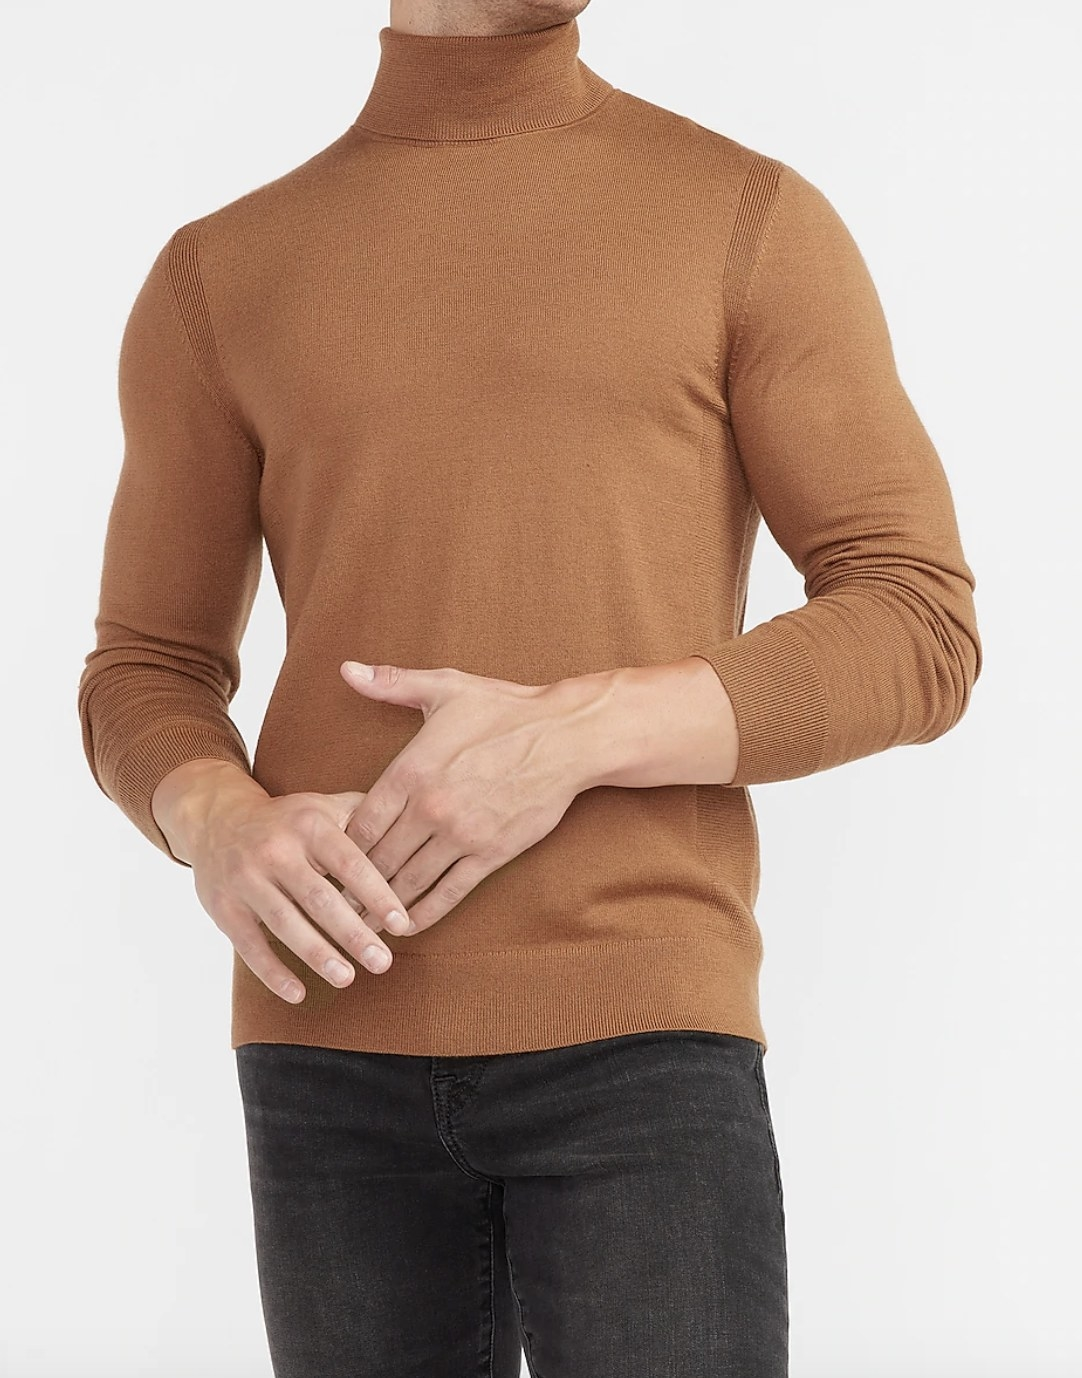 A solid merino wool blend sweater in brown